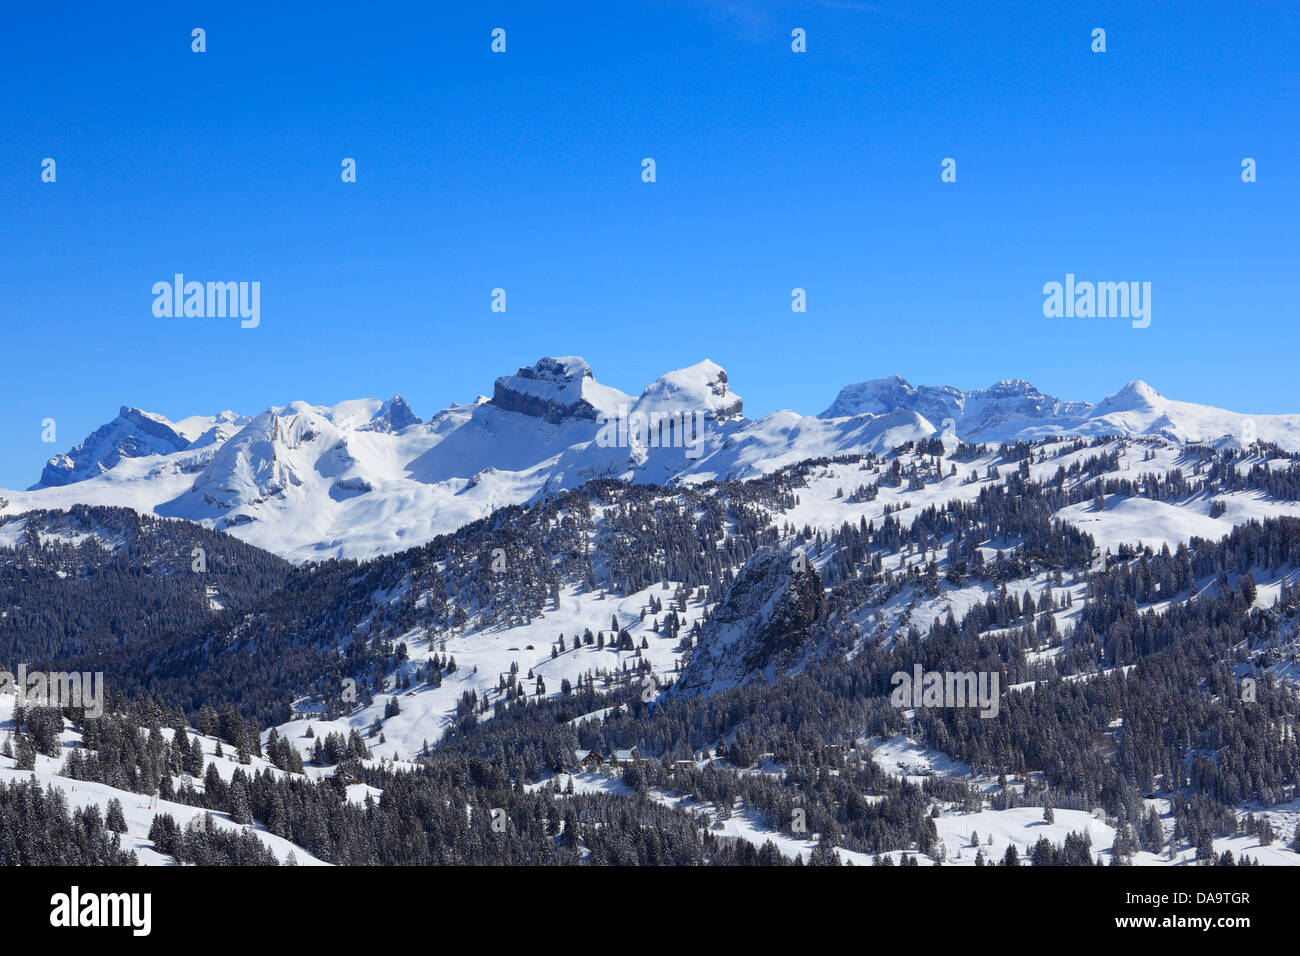 Alps, Alpine wreath, Alpine, panorama, view, mountain, mountains, trees, spruce, spruces, mountains, summits, peaks, - Stock Image